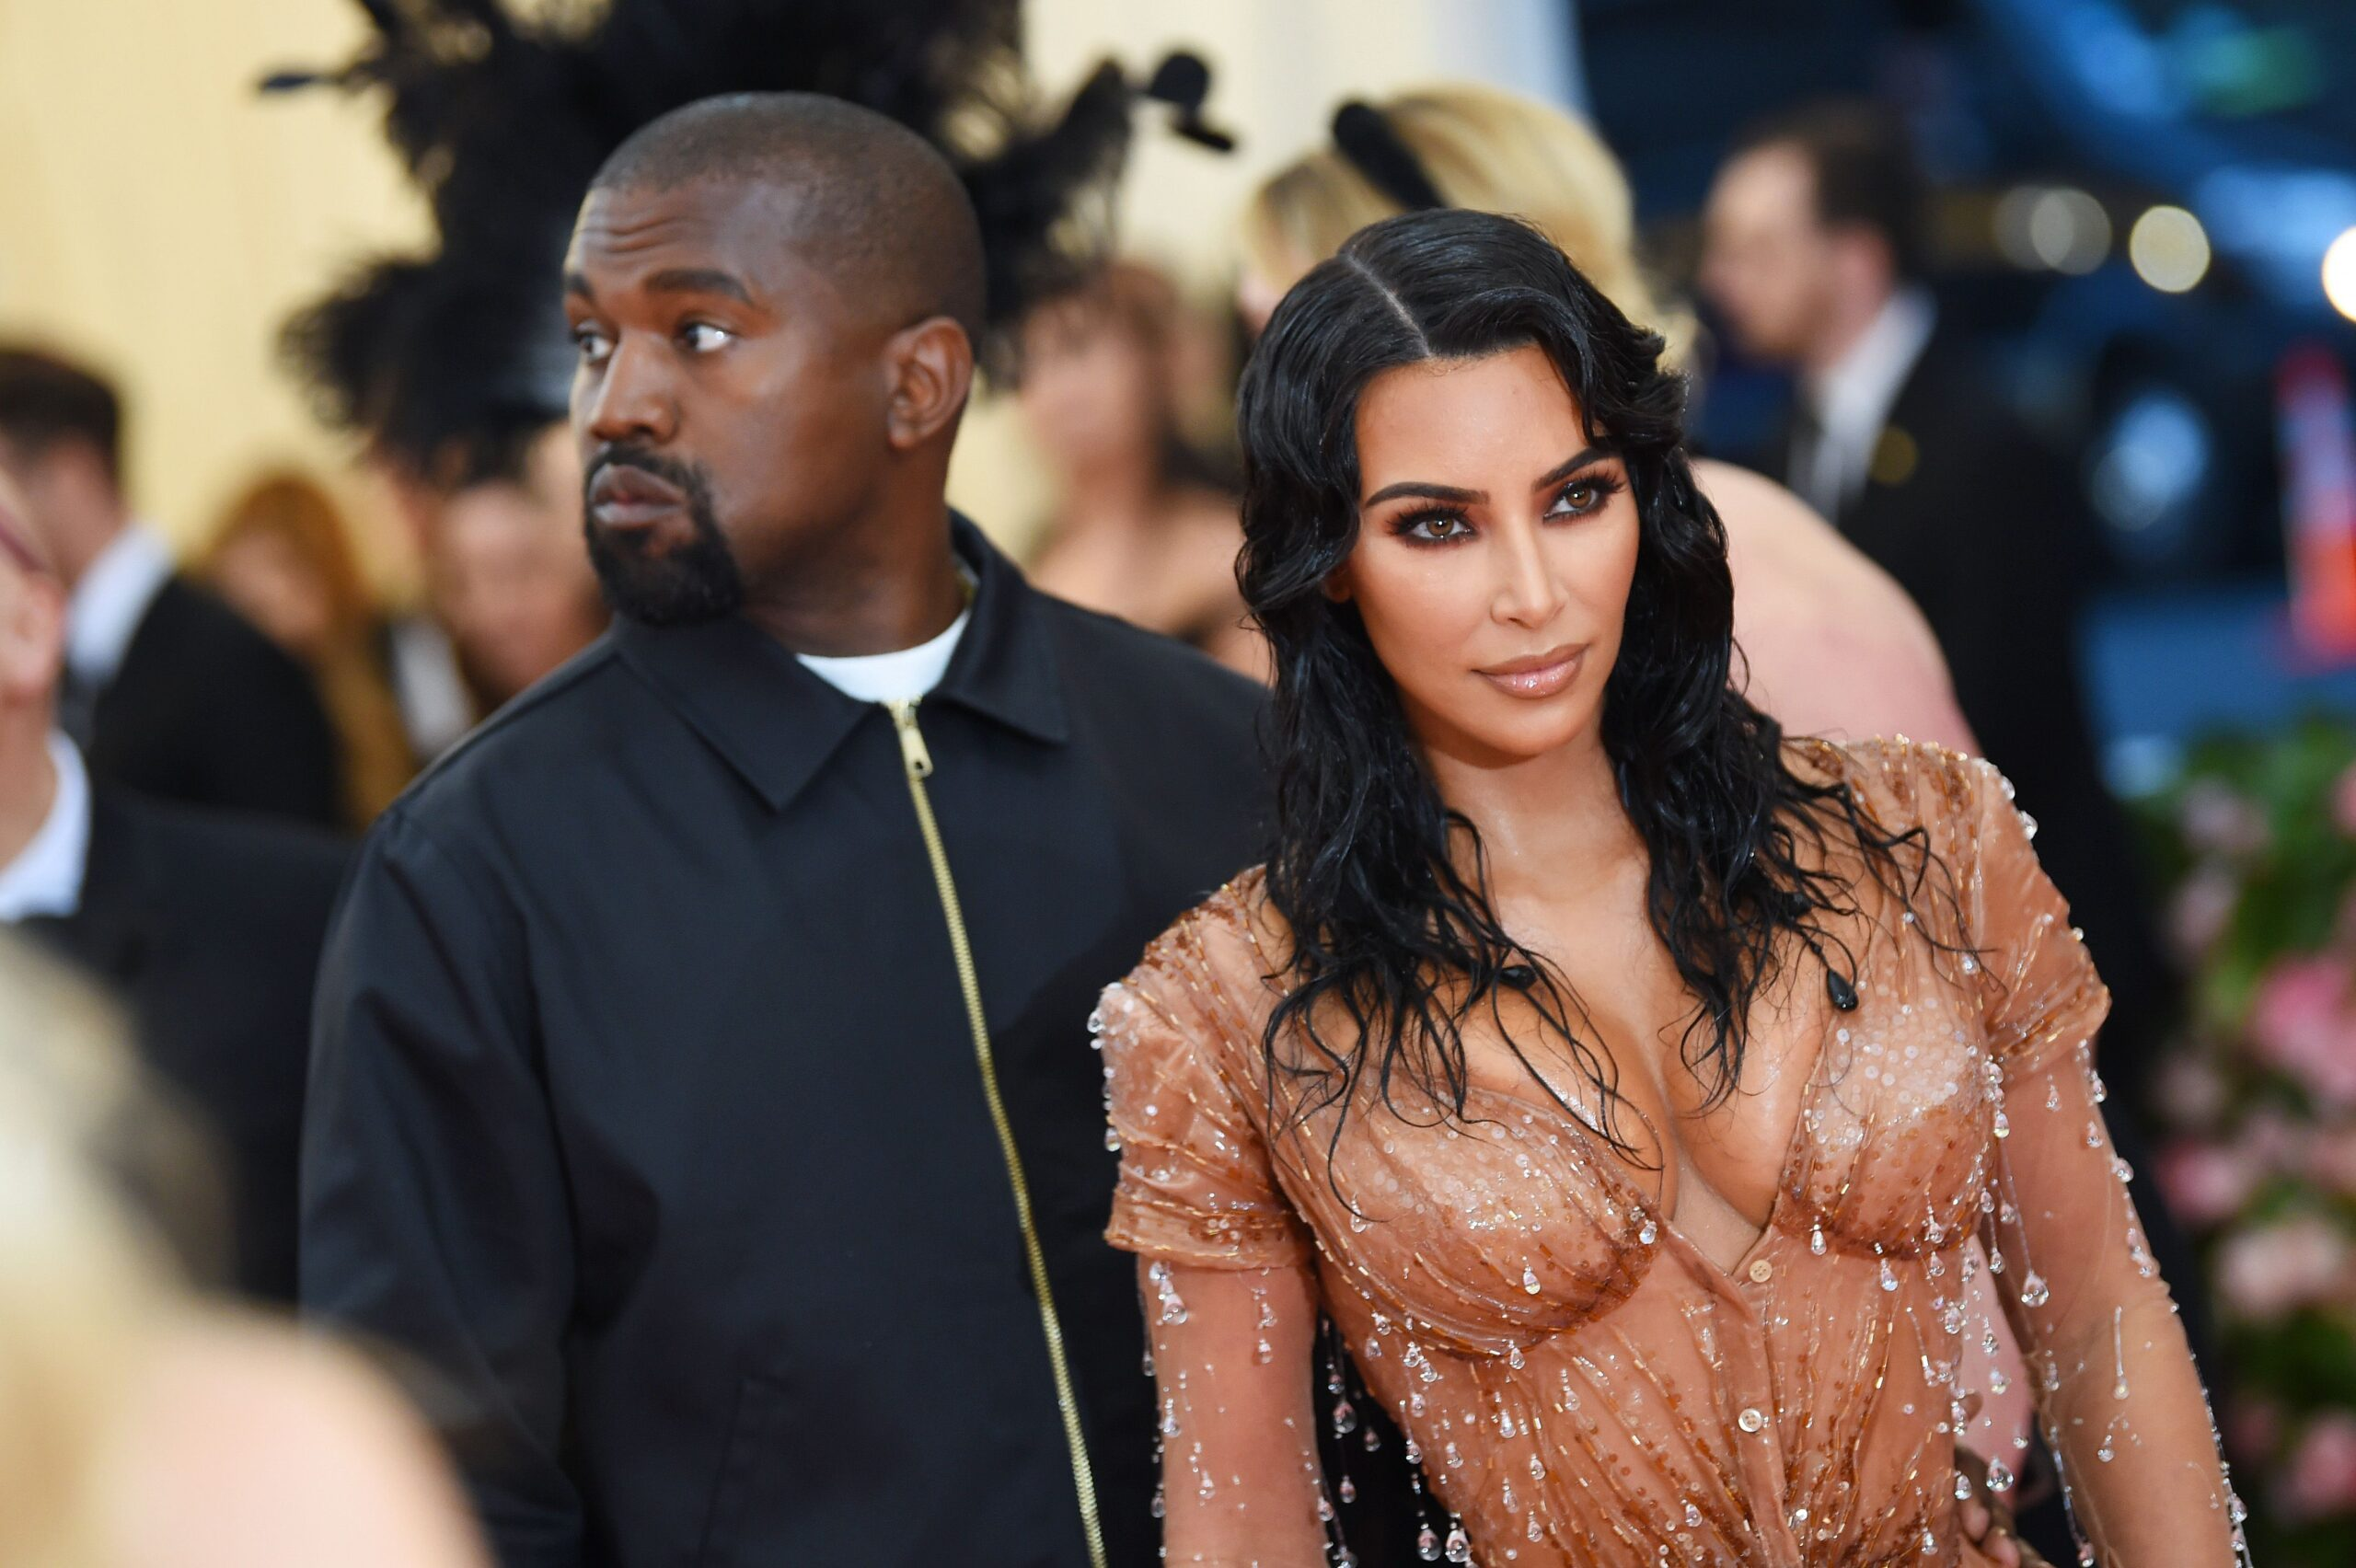 Kim Kardashian and Kanye West are getting a divorce: 'She's done'